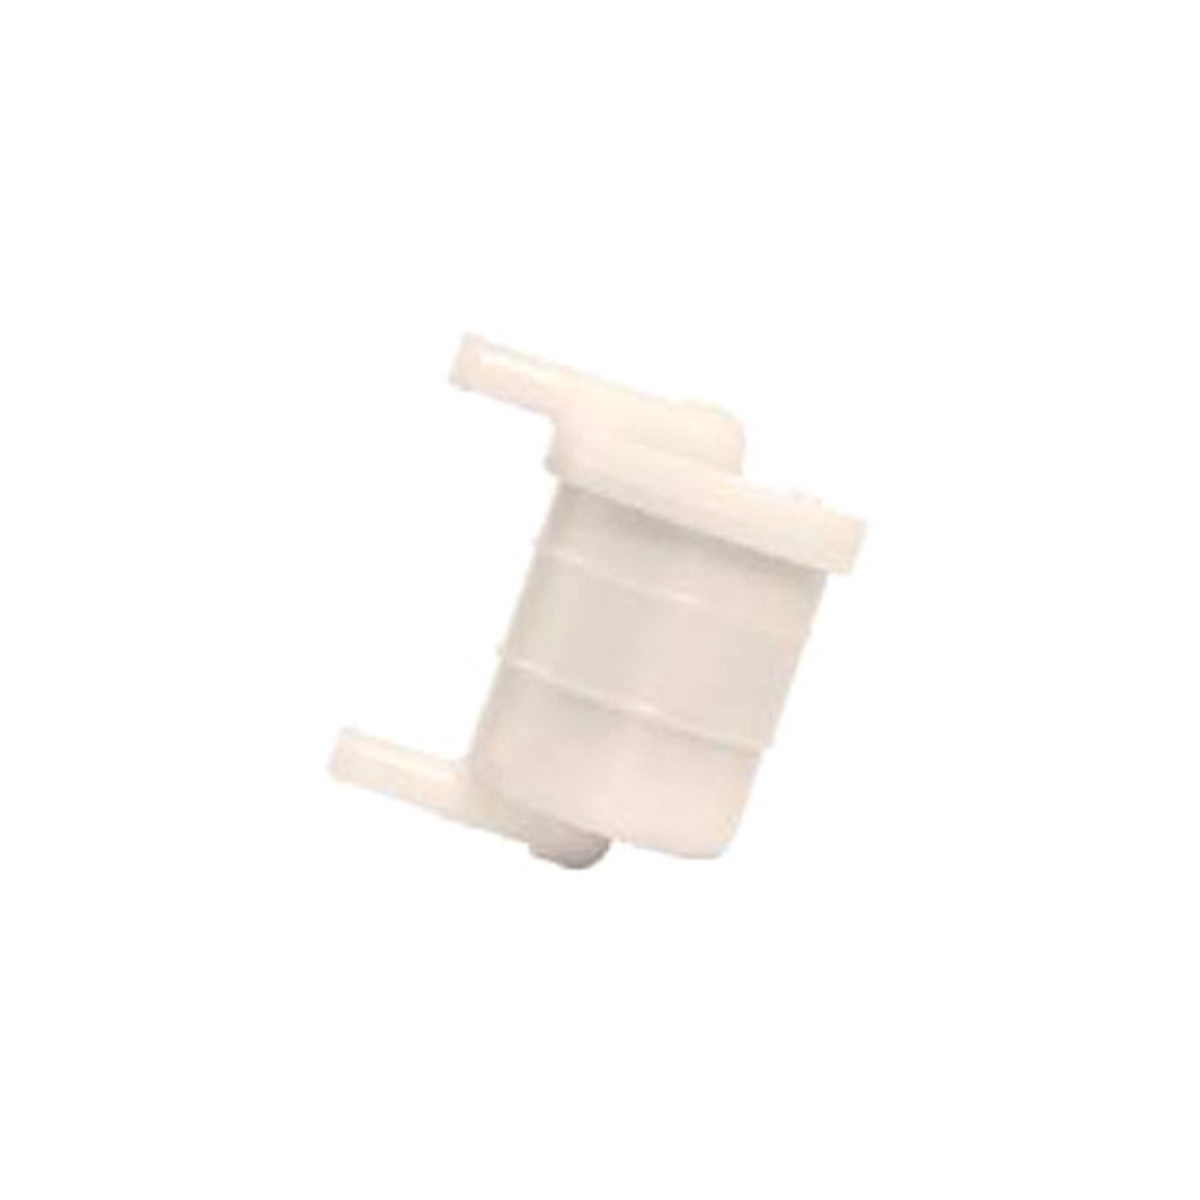 902132 Dixie Chopper Cat Fuel Filter